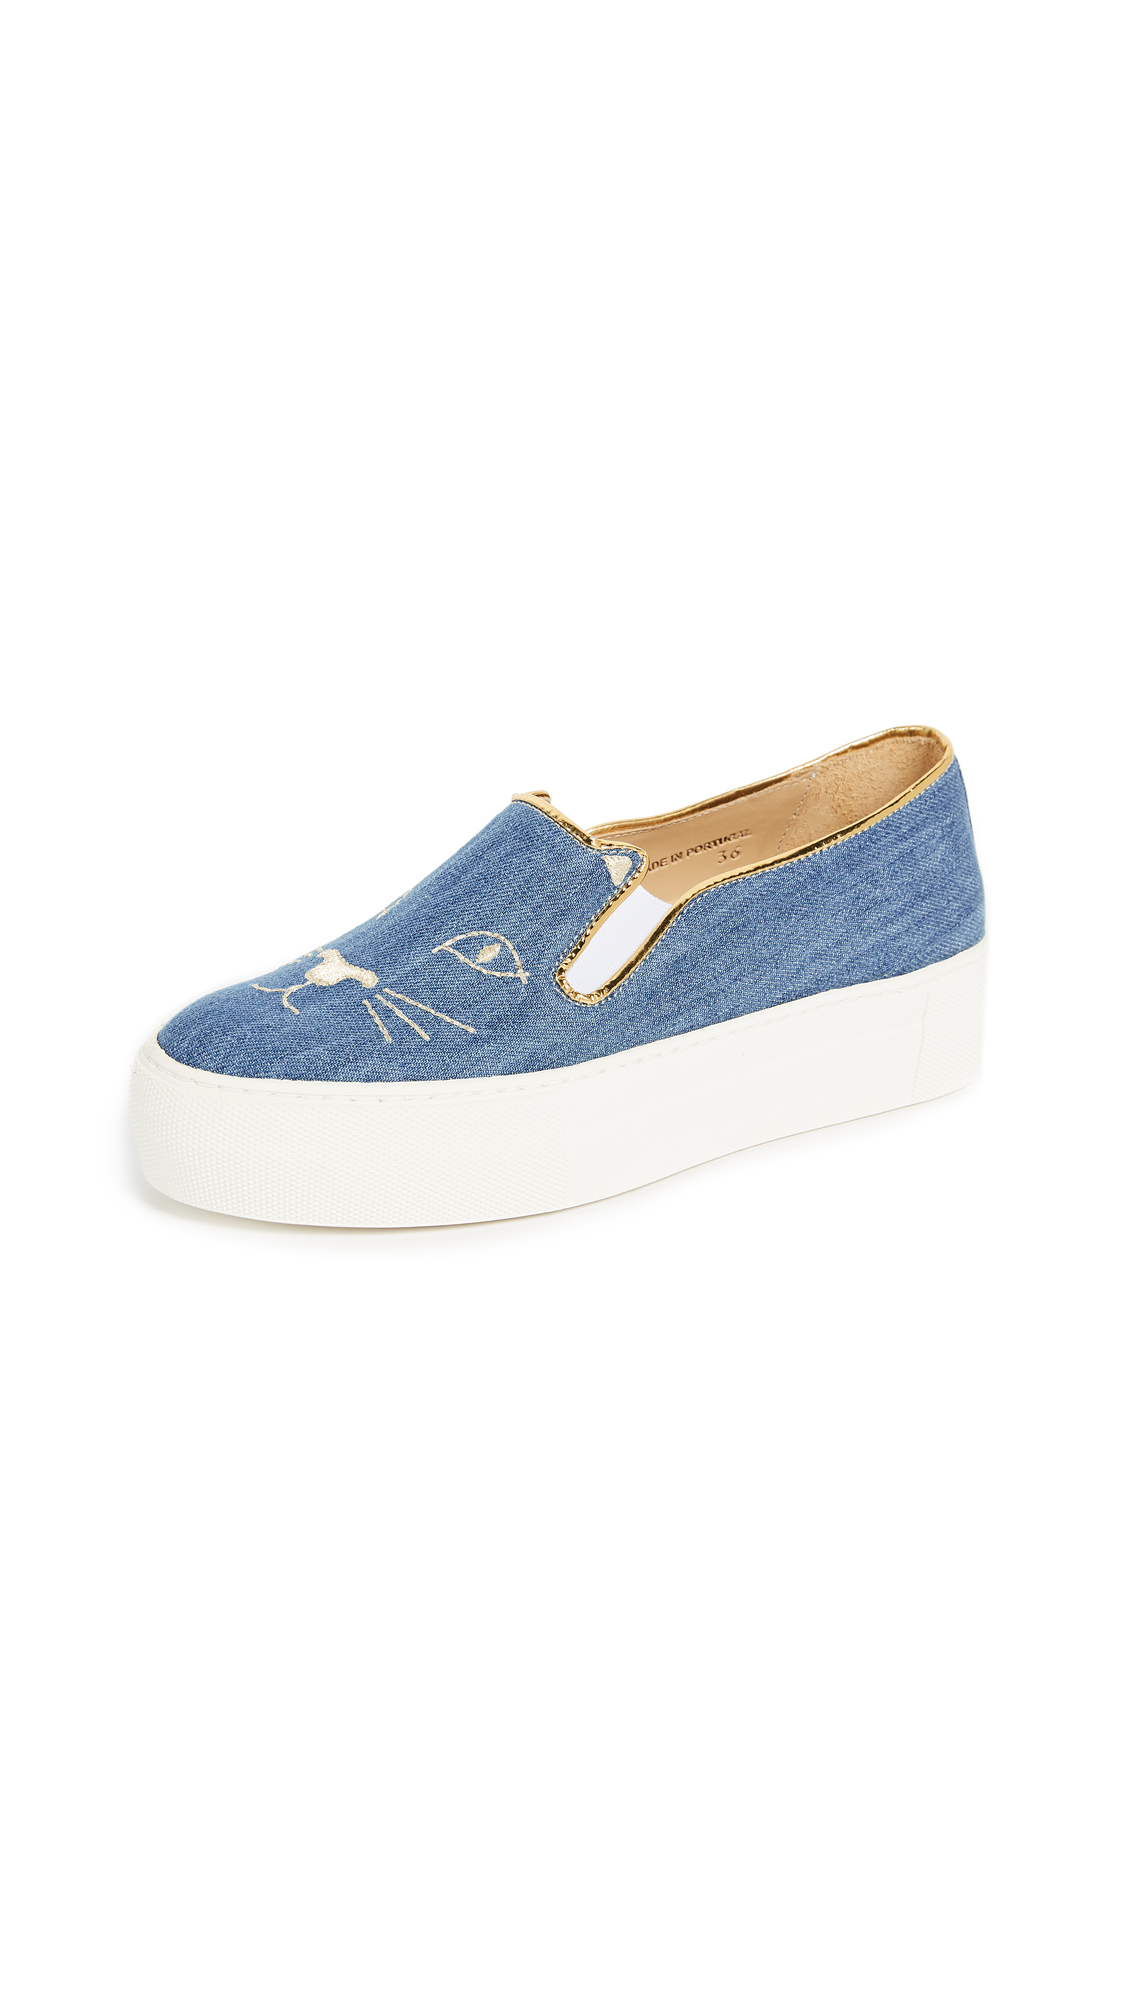 Charlotte Olympia Cool Cats Sneakers - Light Denim